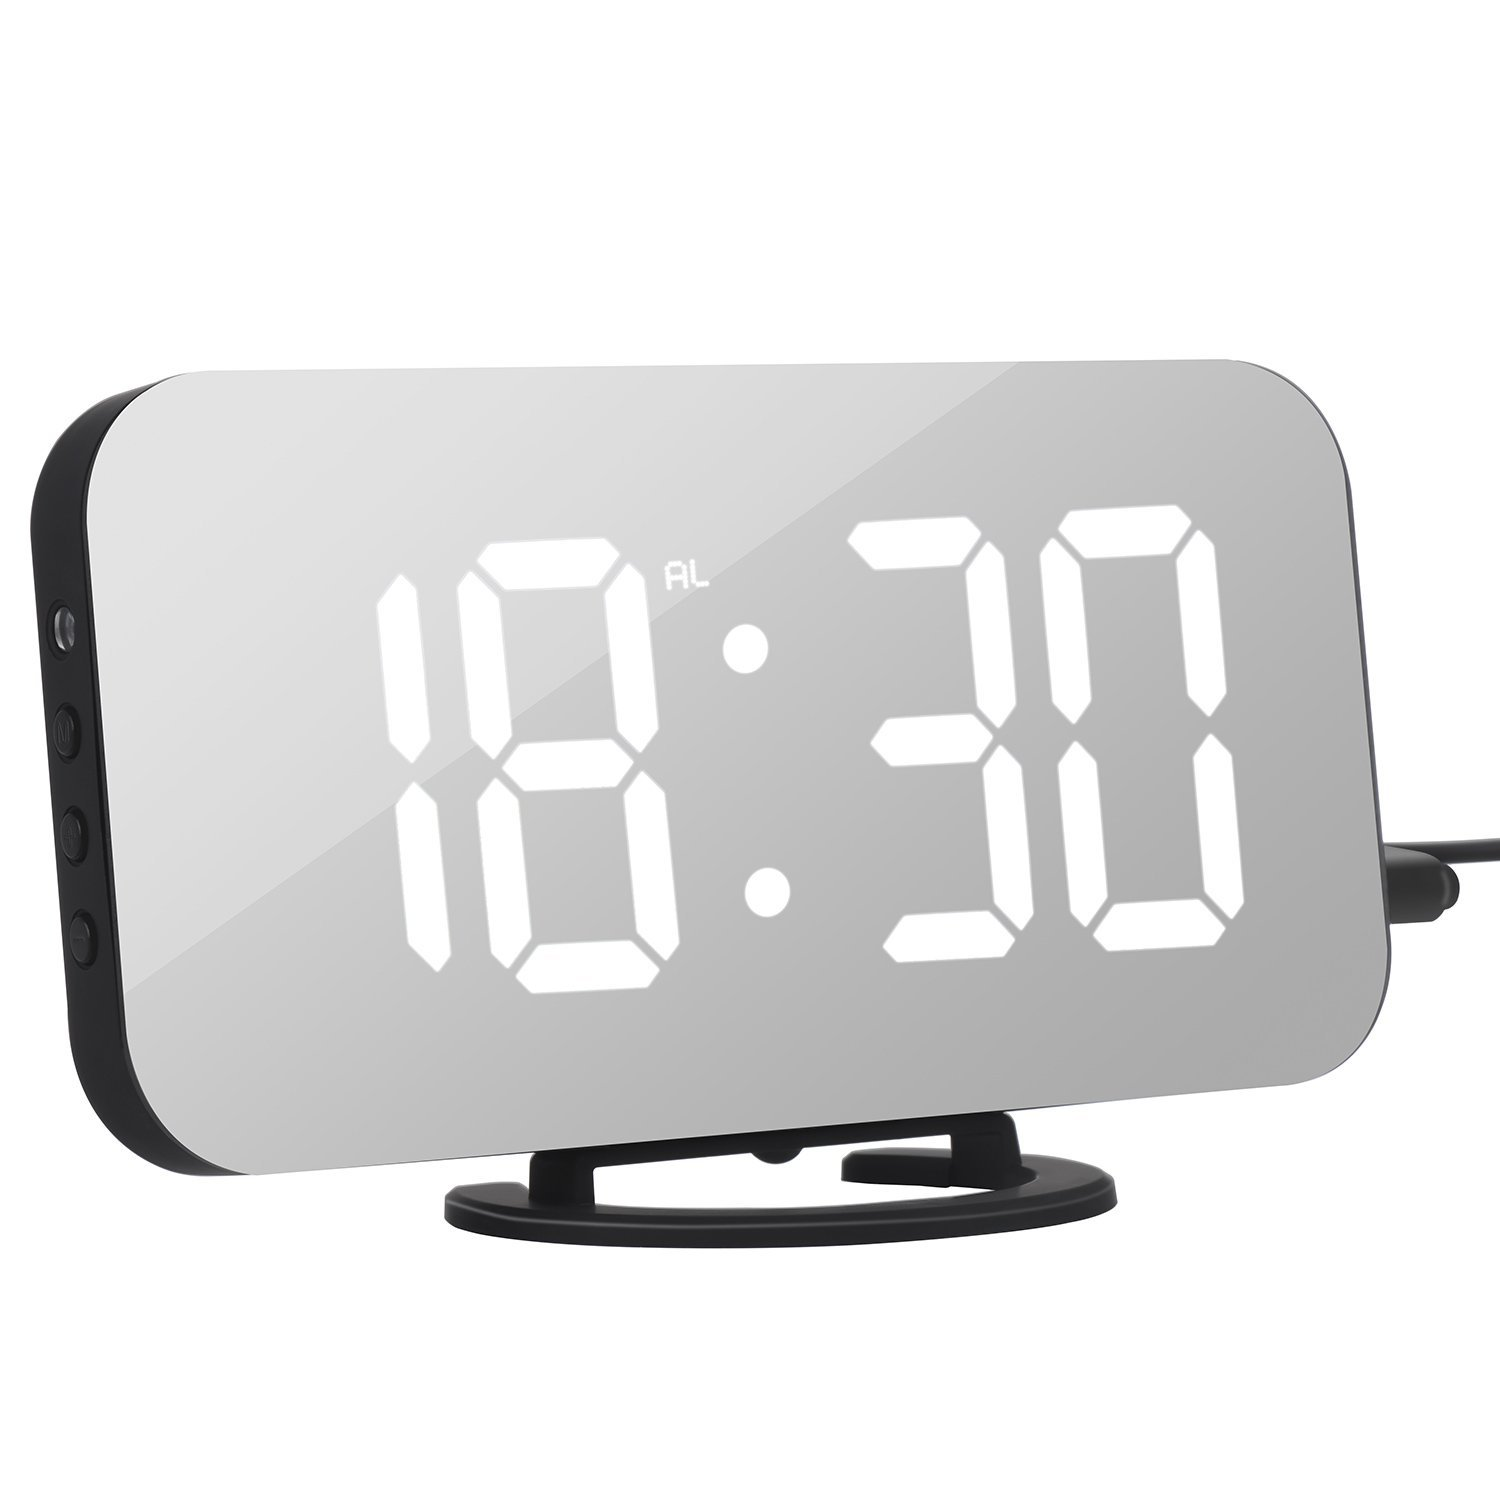 Adoric alarm digital clock